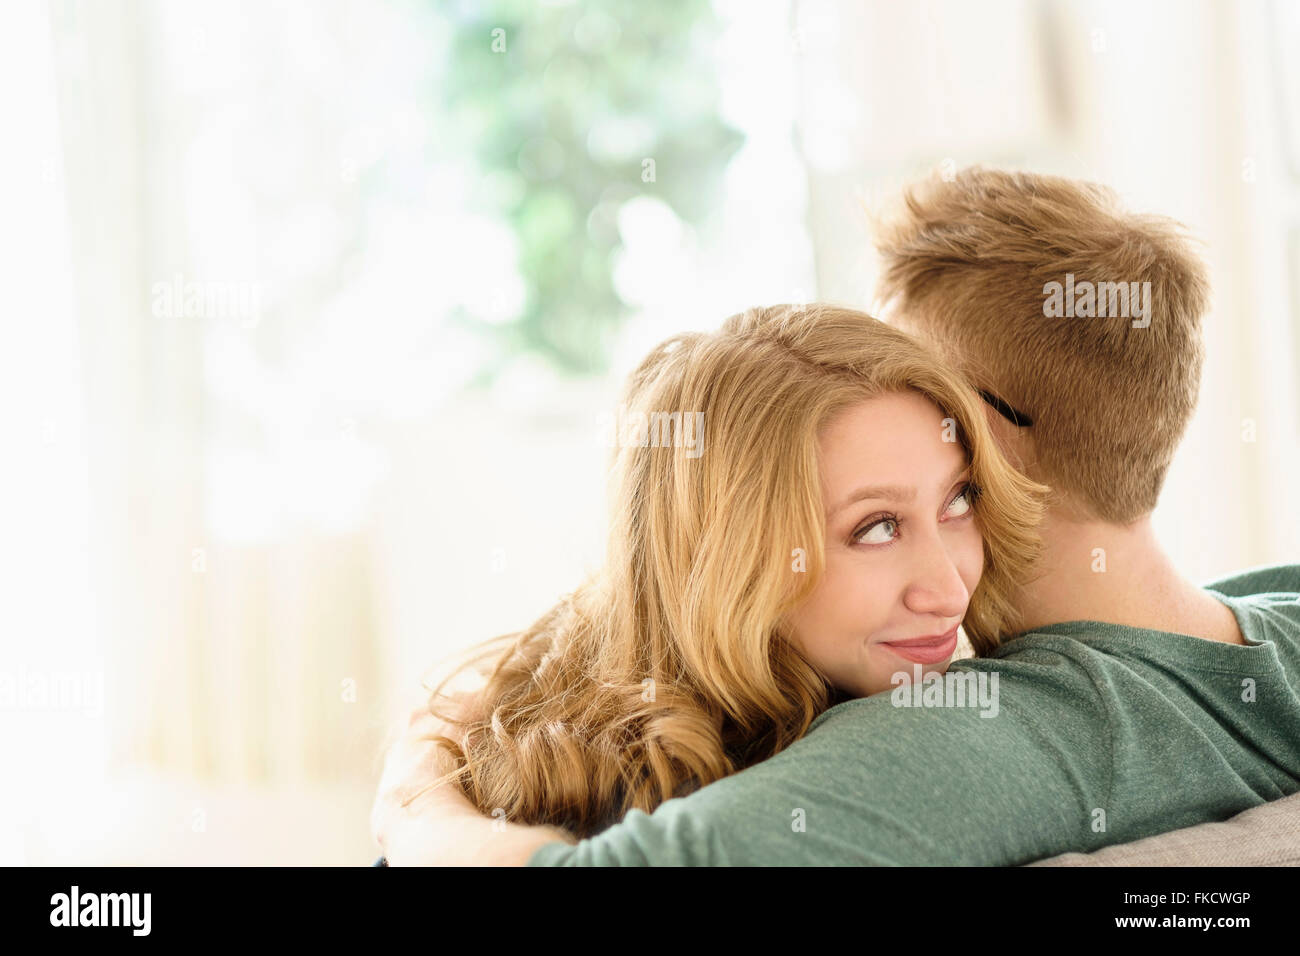 Young woman looking over boyfriend's shoulder - Stock Image